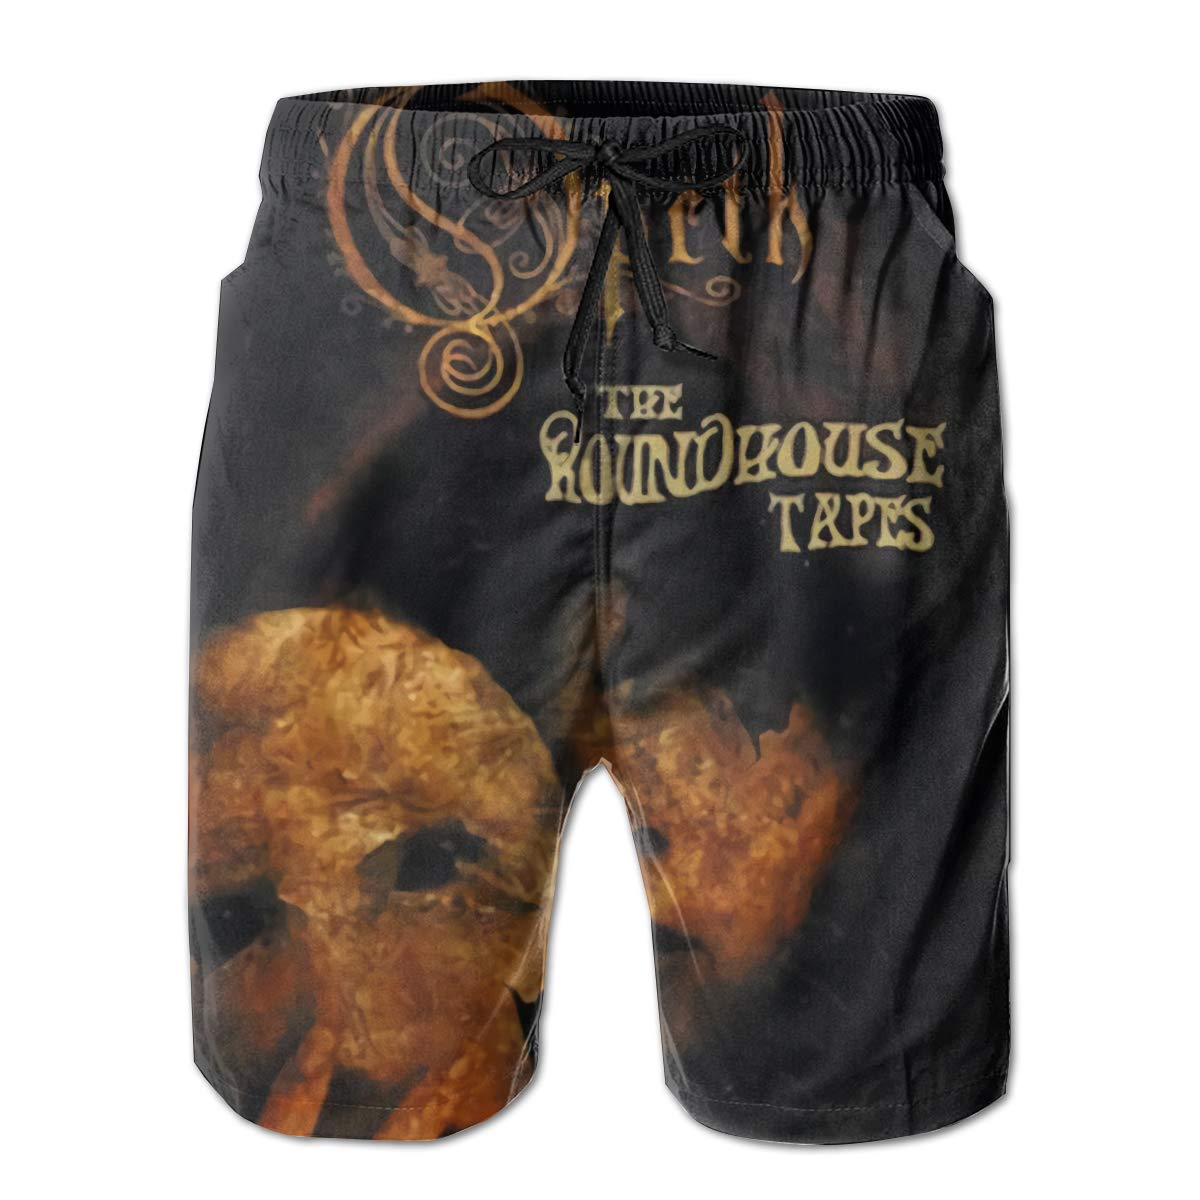 Robert R Castleberry Opeth The Roundhouse Tapes Men Summer Beach Shorts Surfing Pants